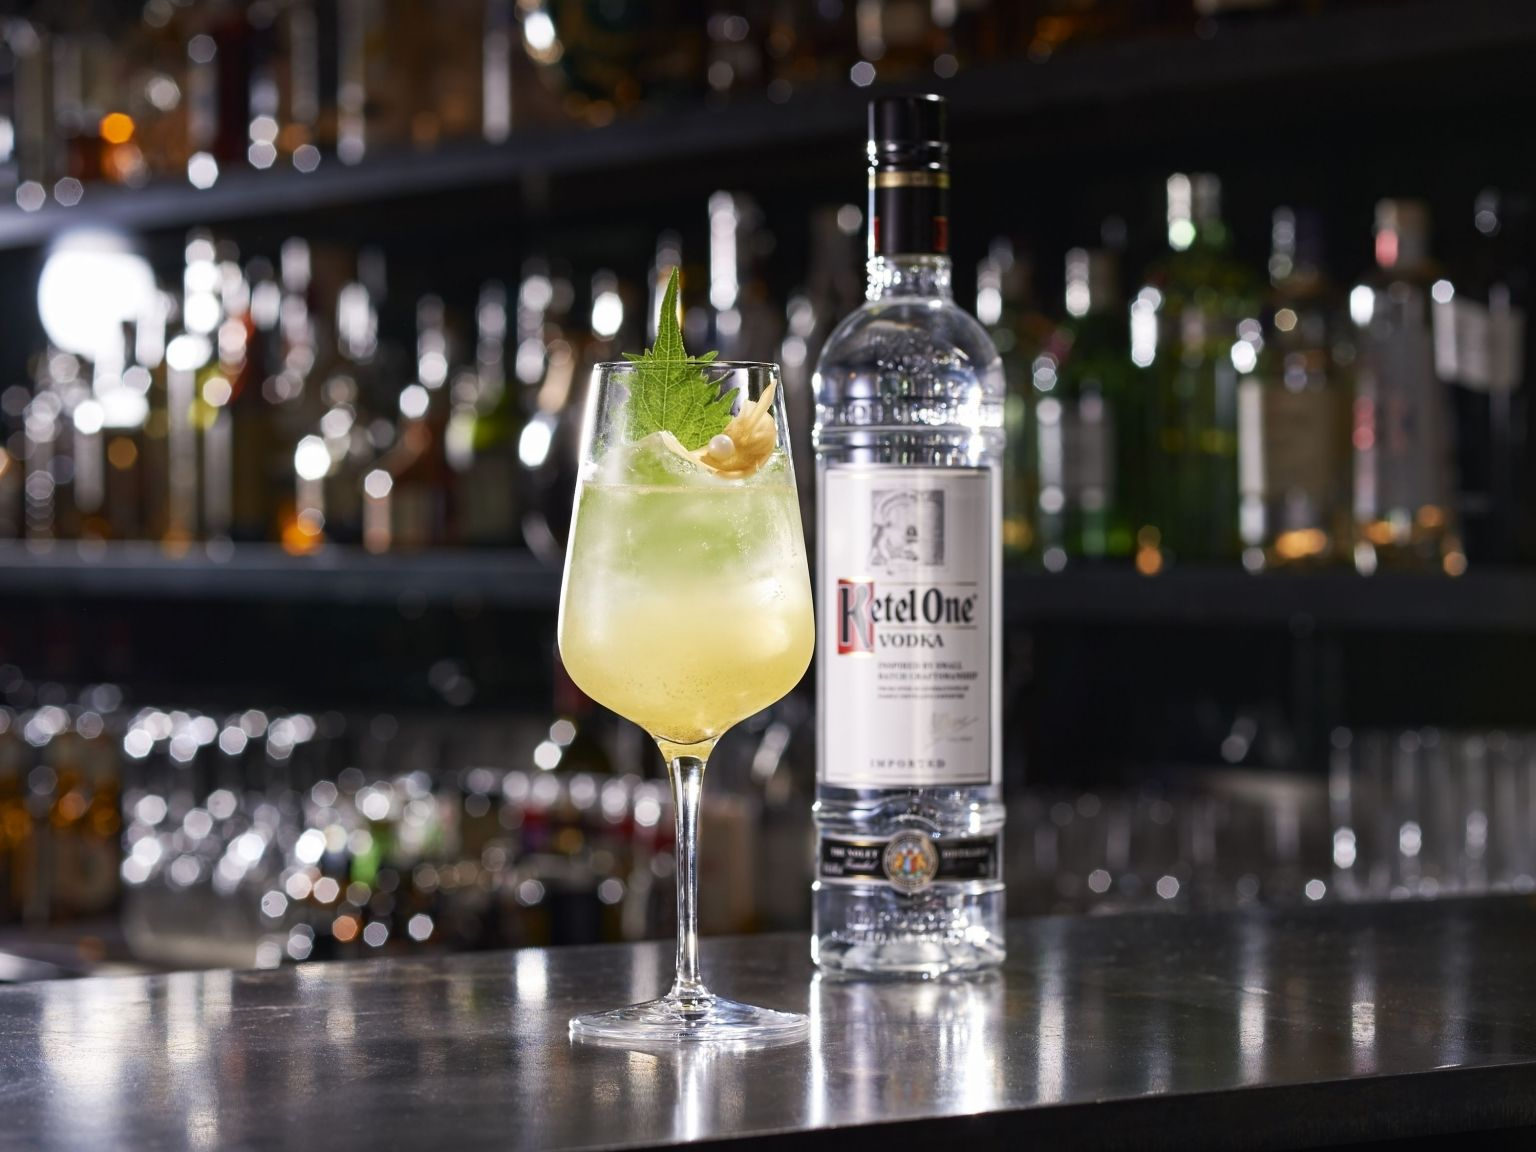 Ketel One cocktail Hotel Cafe Royal Green Bar Shaun Leane Lee Alexander McQueen London Craft Week 2017